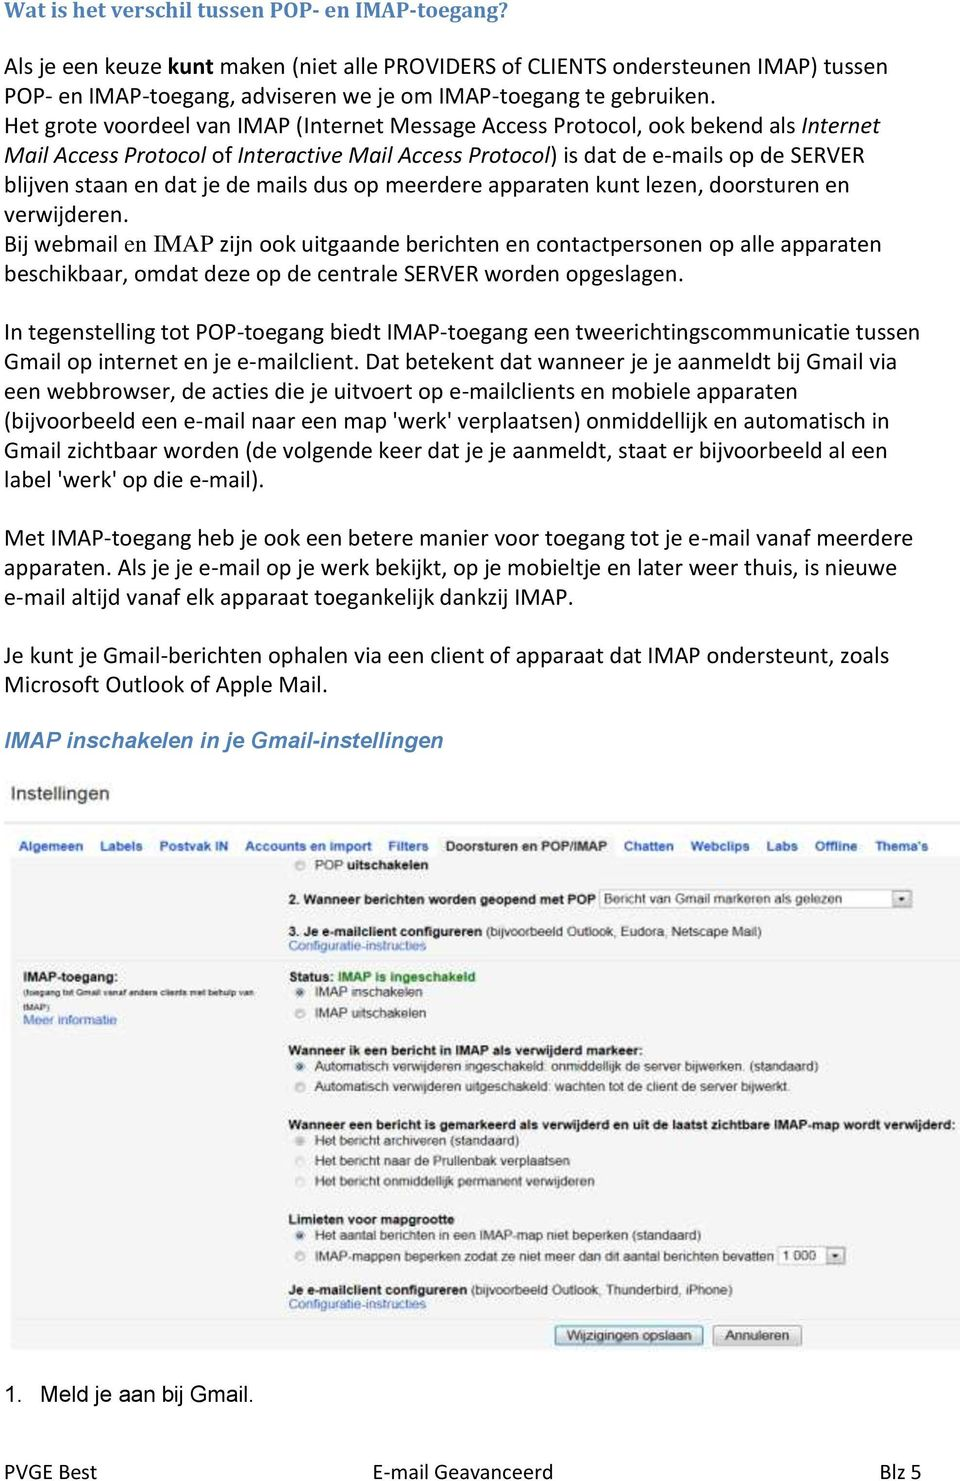 Het grote voordeel van IMAP (Internet Message Access Protocol, ook bekend als Internet Mail Access Protocol of Interactive Mail Access Protocol) is dat de e-mails op de SERVER blijven staan en dat je